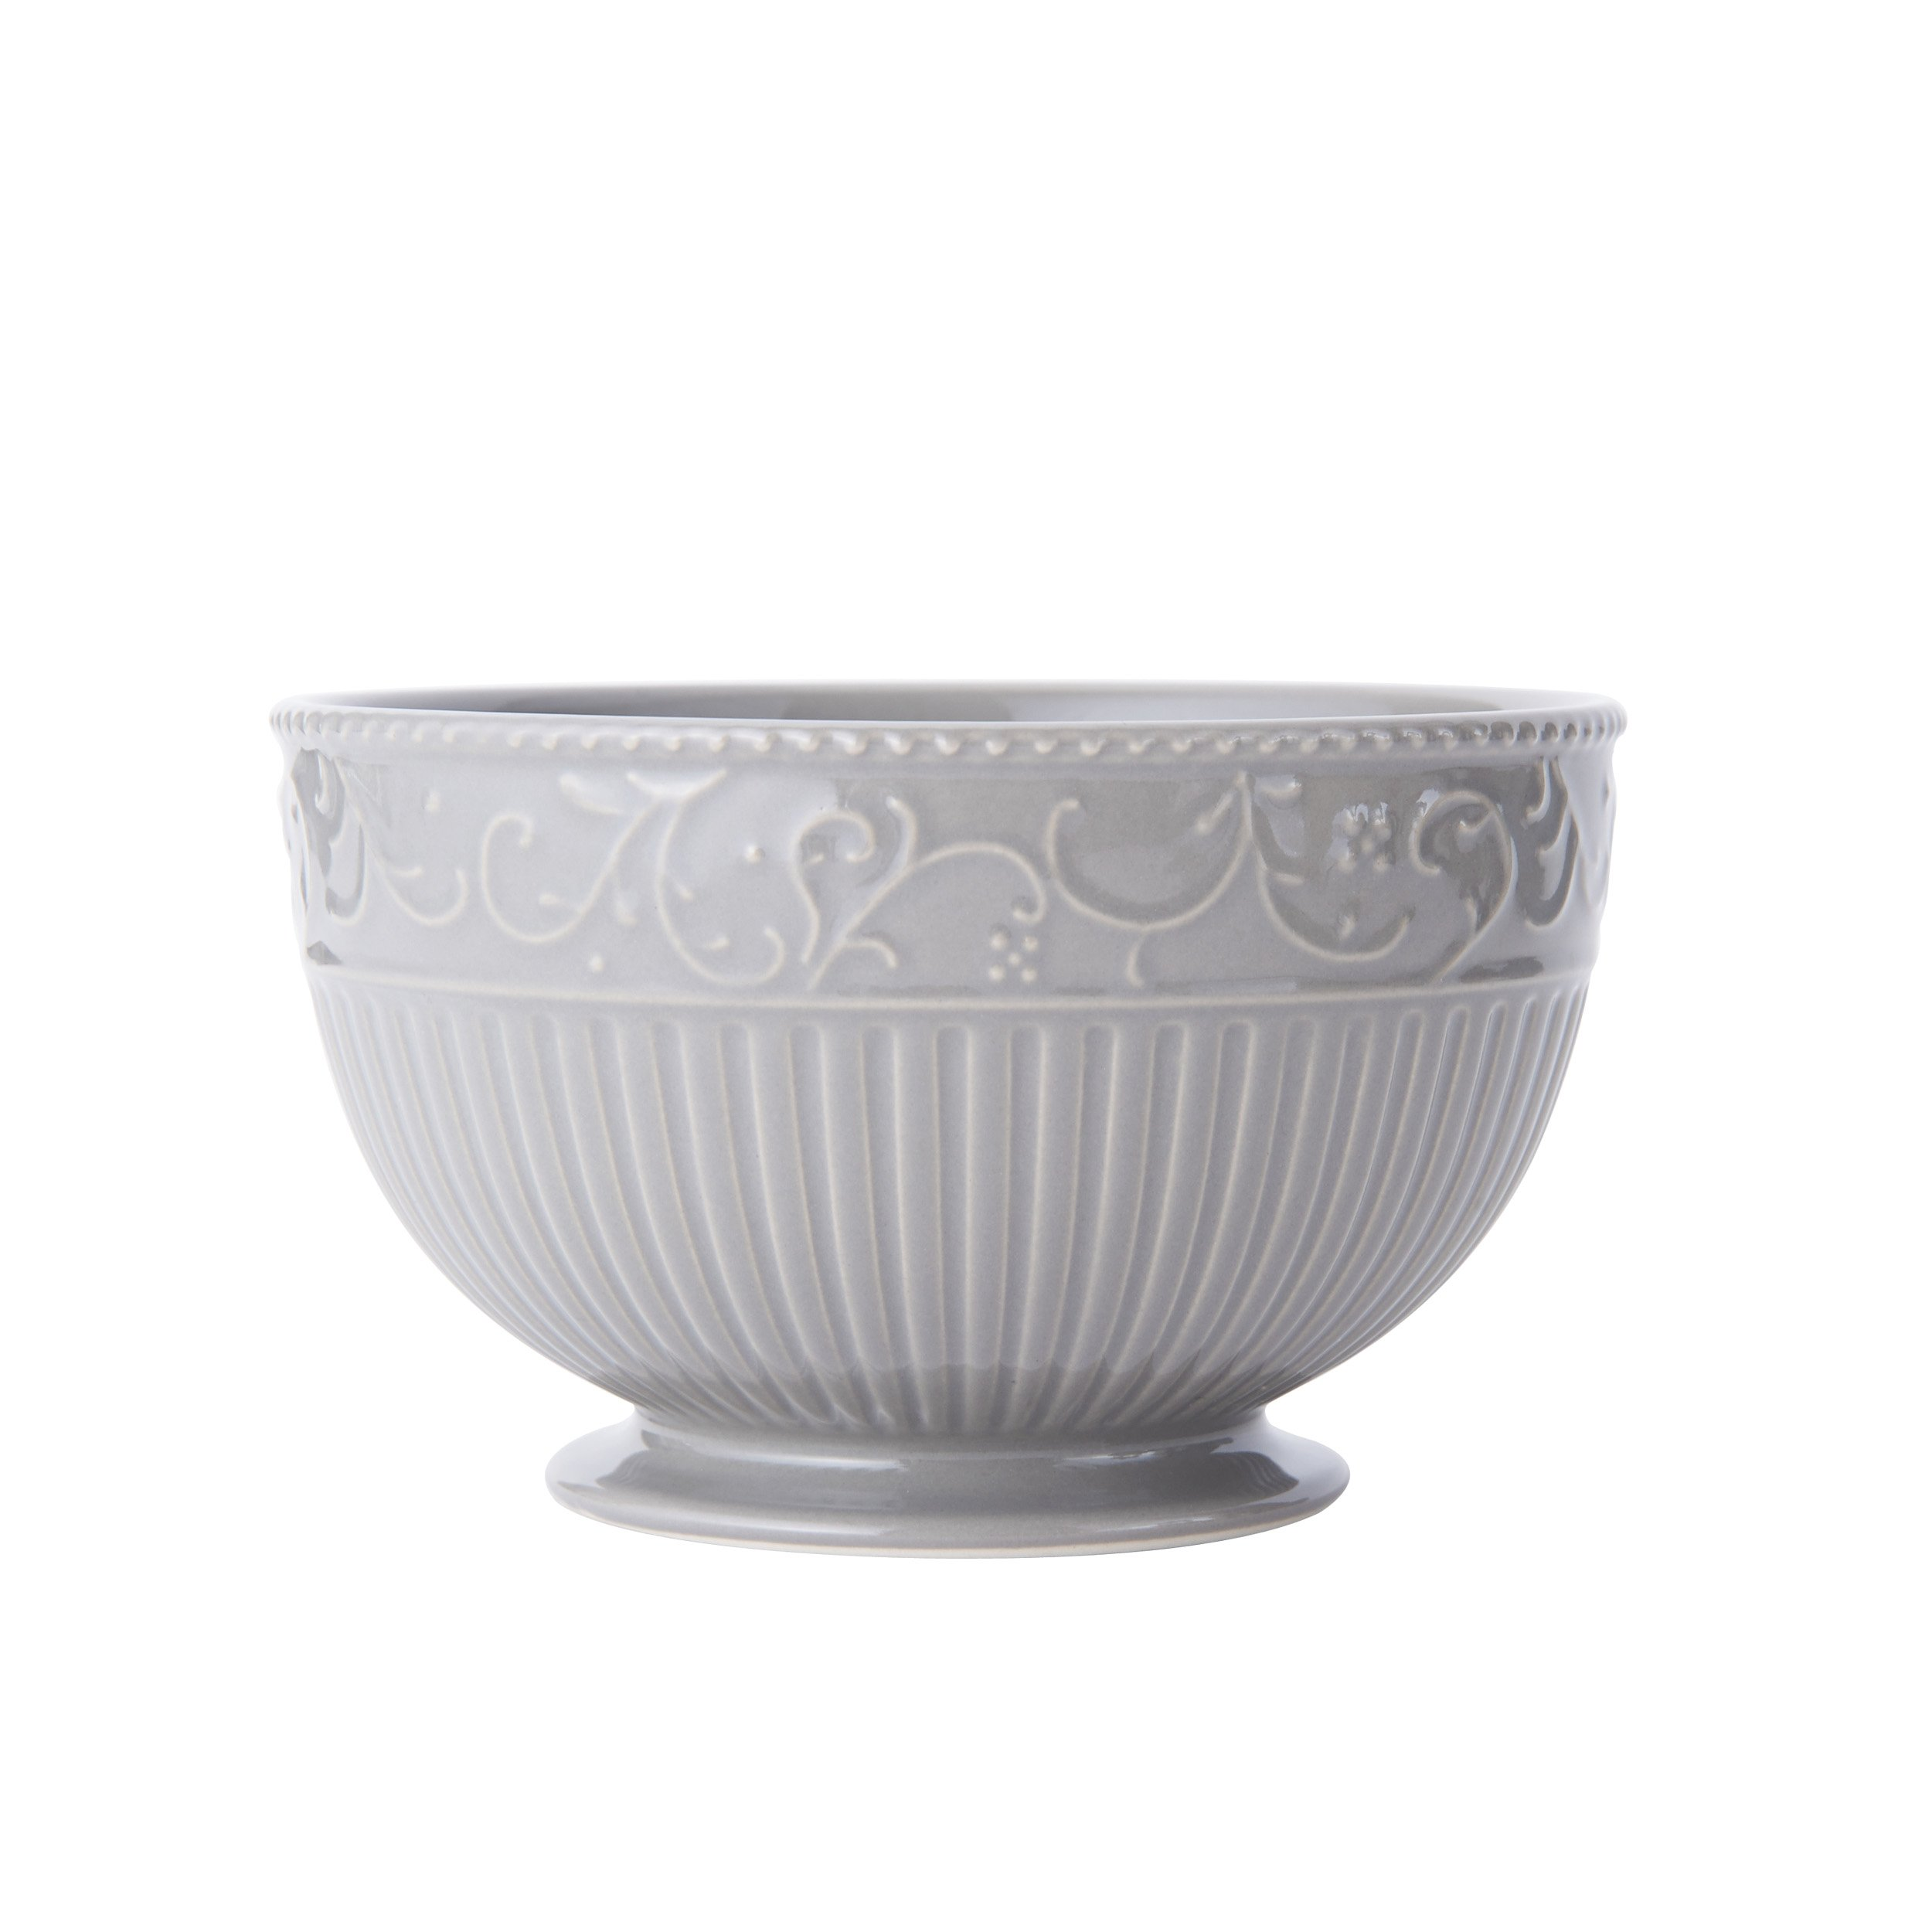 Mikasa Italian Countryside Accents Footed Soup/Cereal Bowl, Scroll Grey